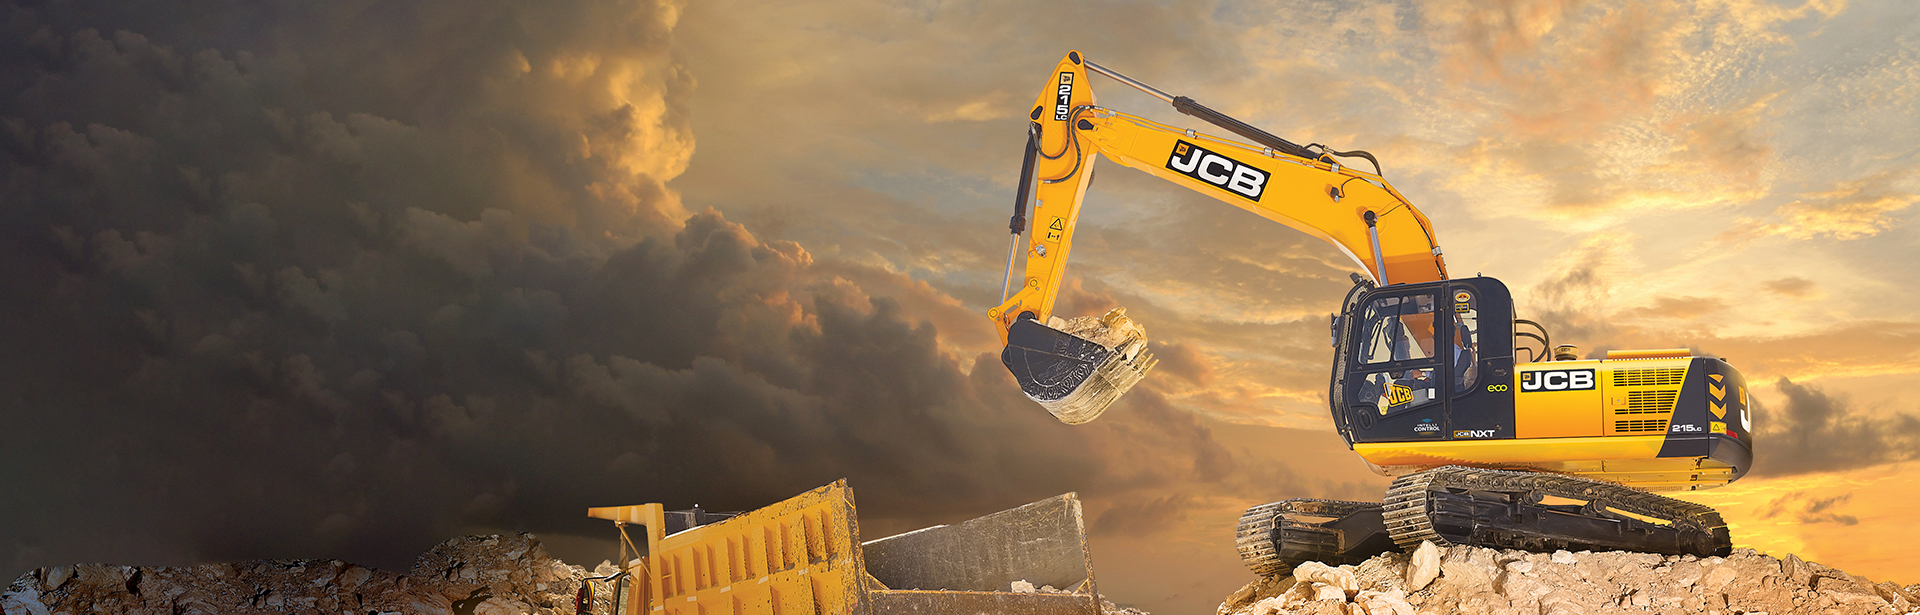 JCB Tracked Excavators Hyderabad